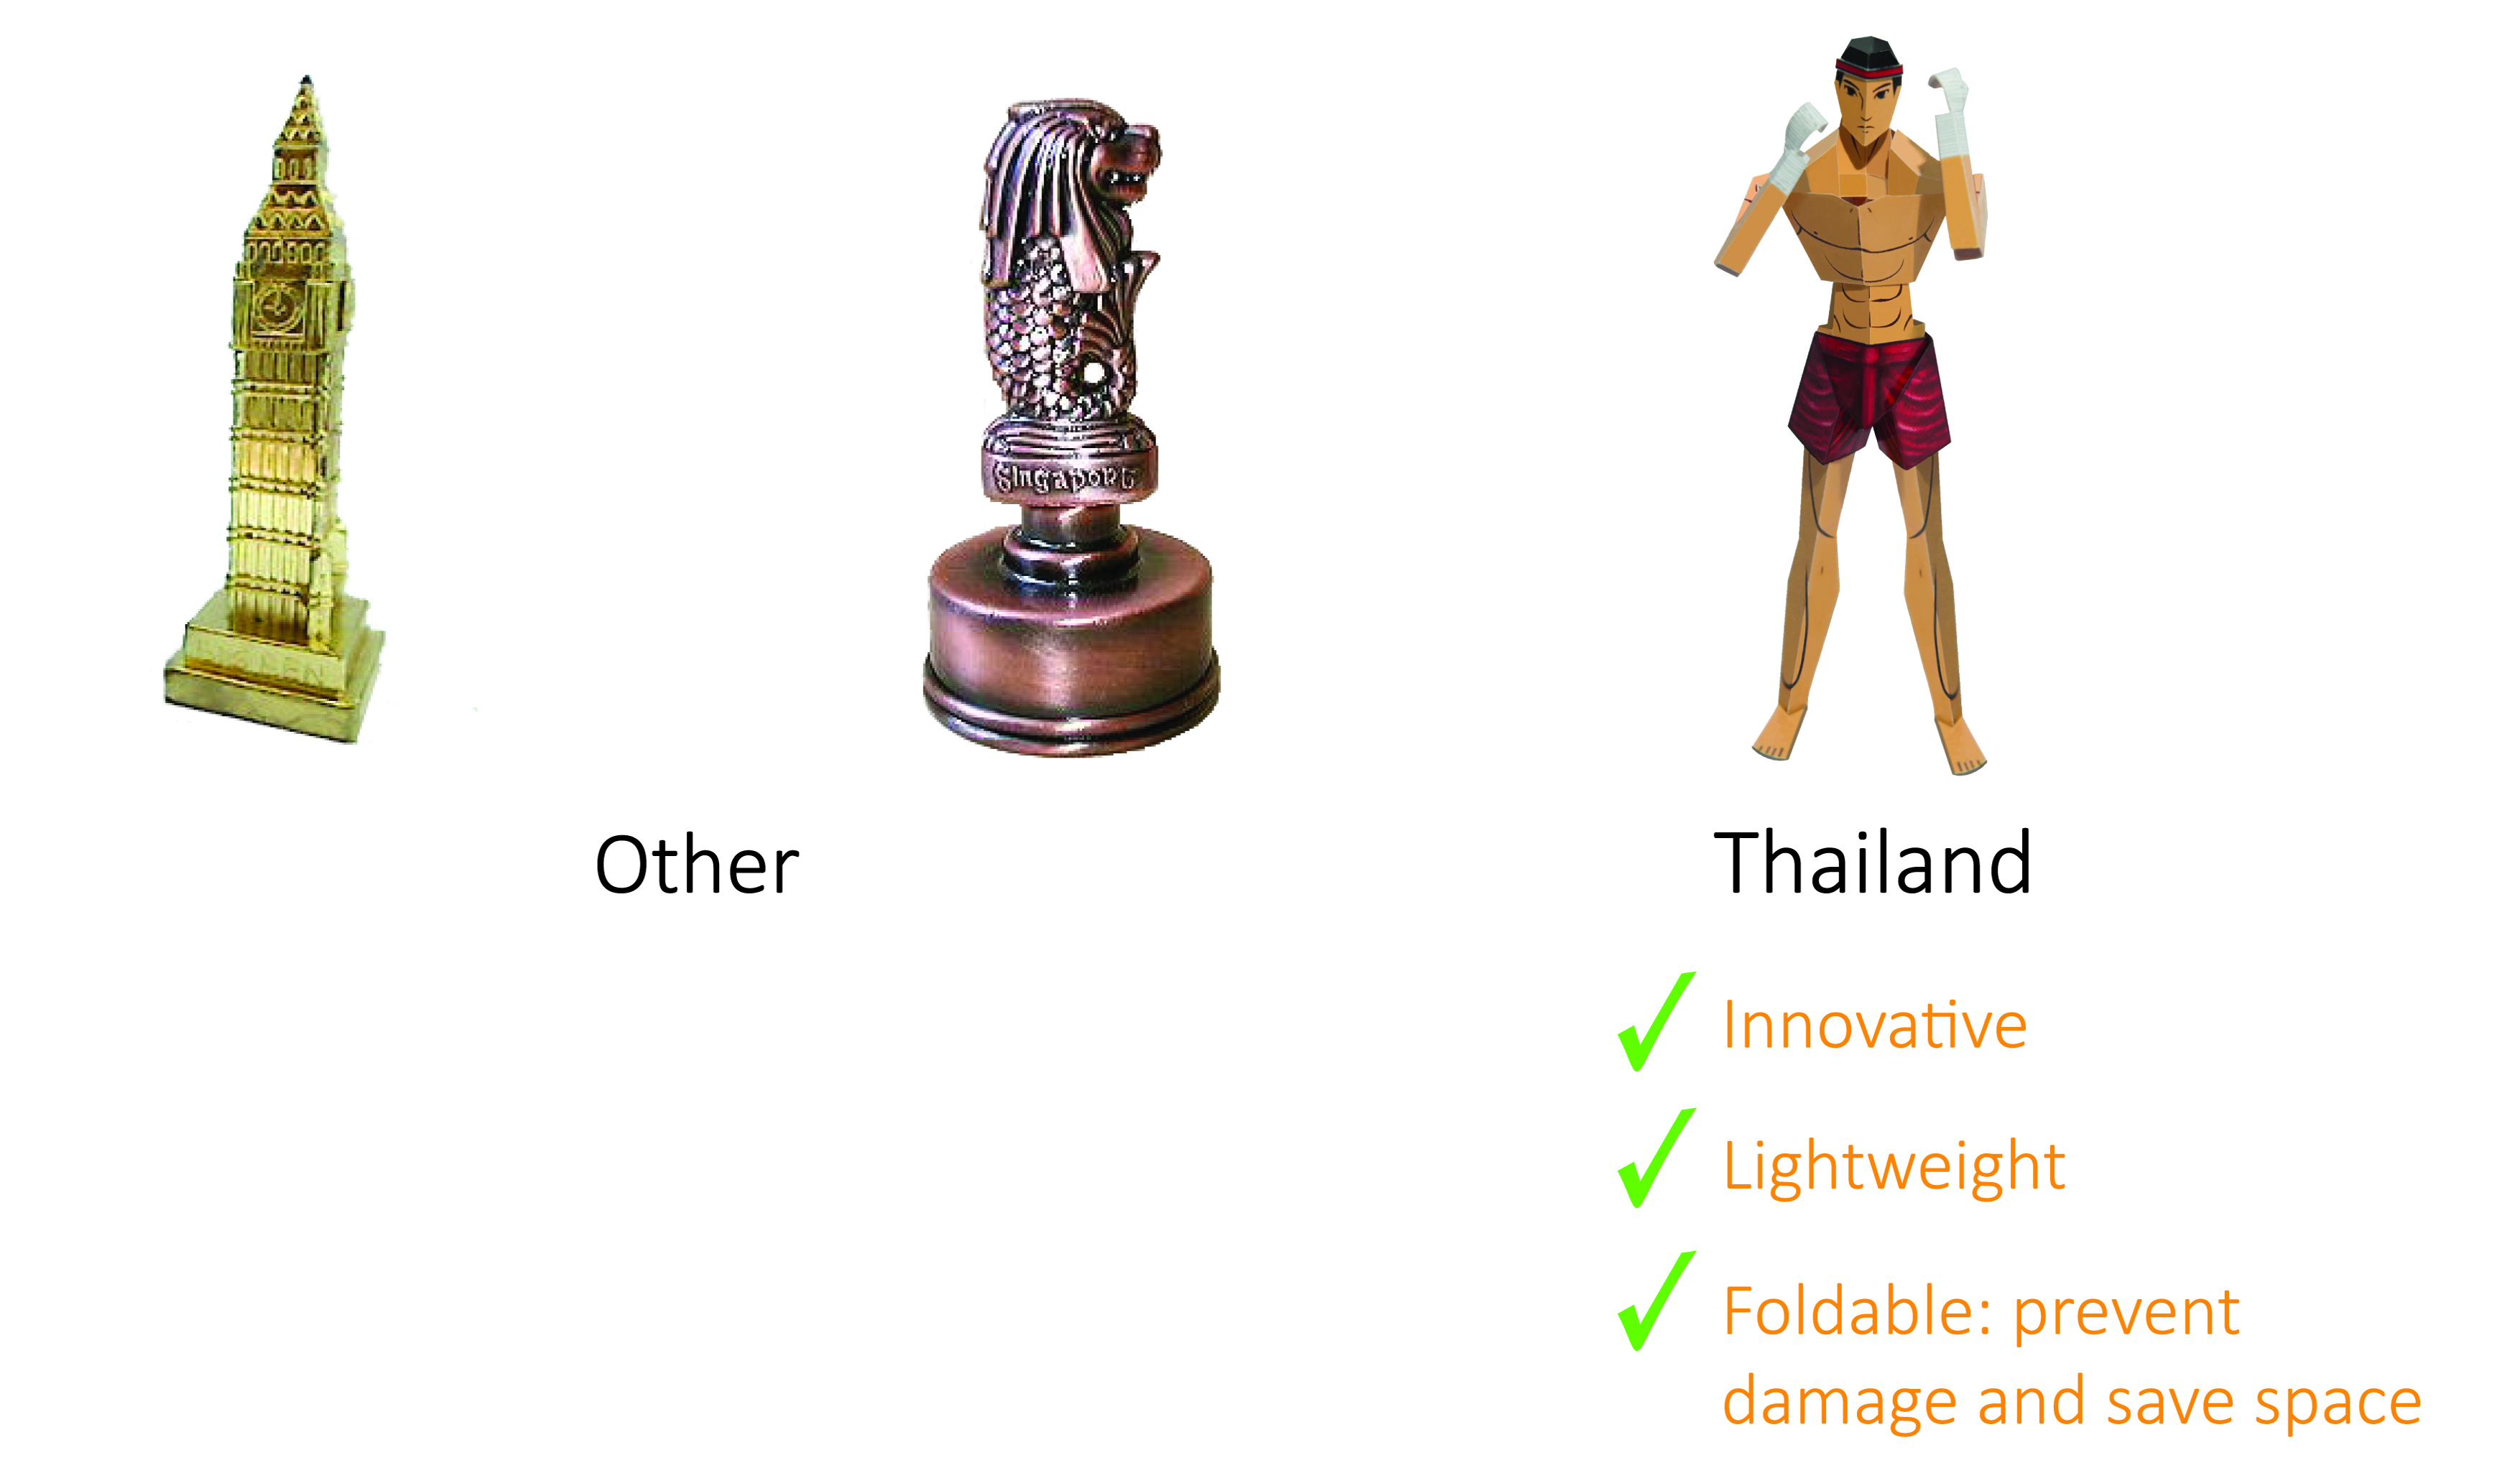 comparing benefits between Amazing Muay Thai and other souvenirs